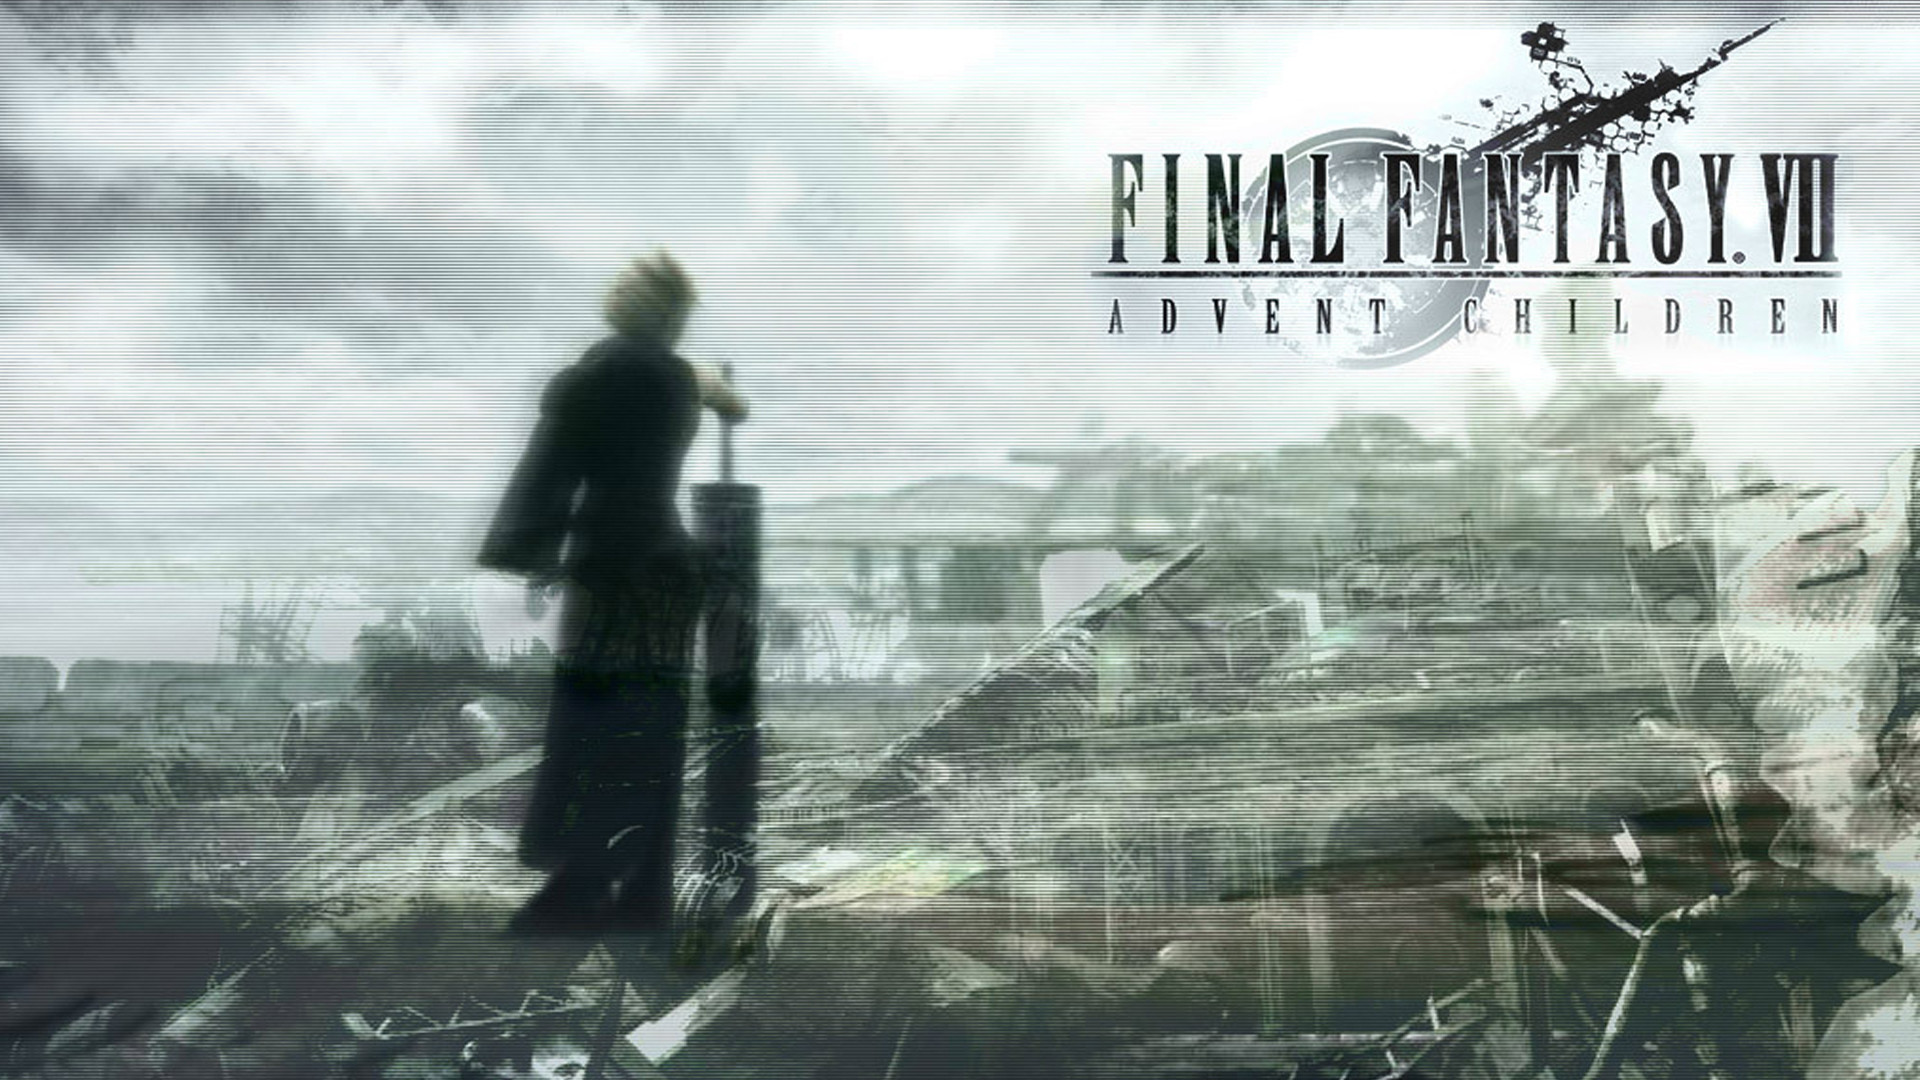 1920x1080 Final Fantasy Final Fantasy VII Final Fantasy VII Advent Children wallpaper  |  | 229860 | WallpaperUP